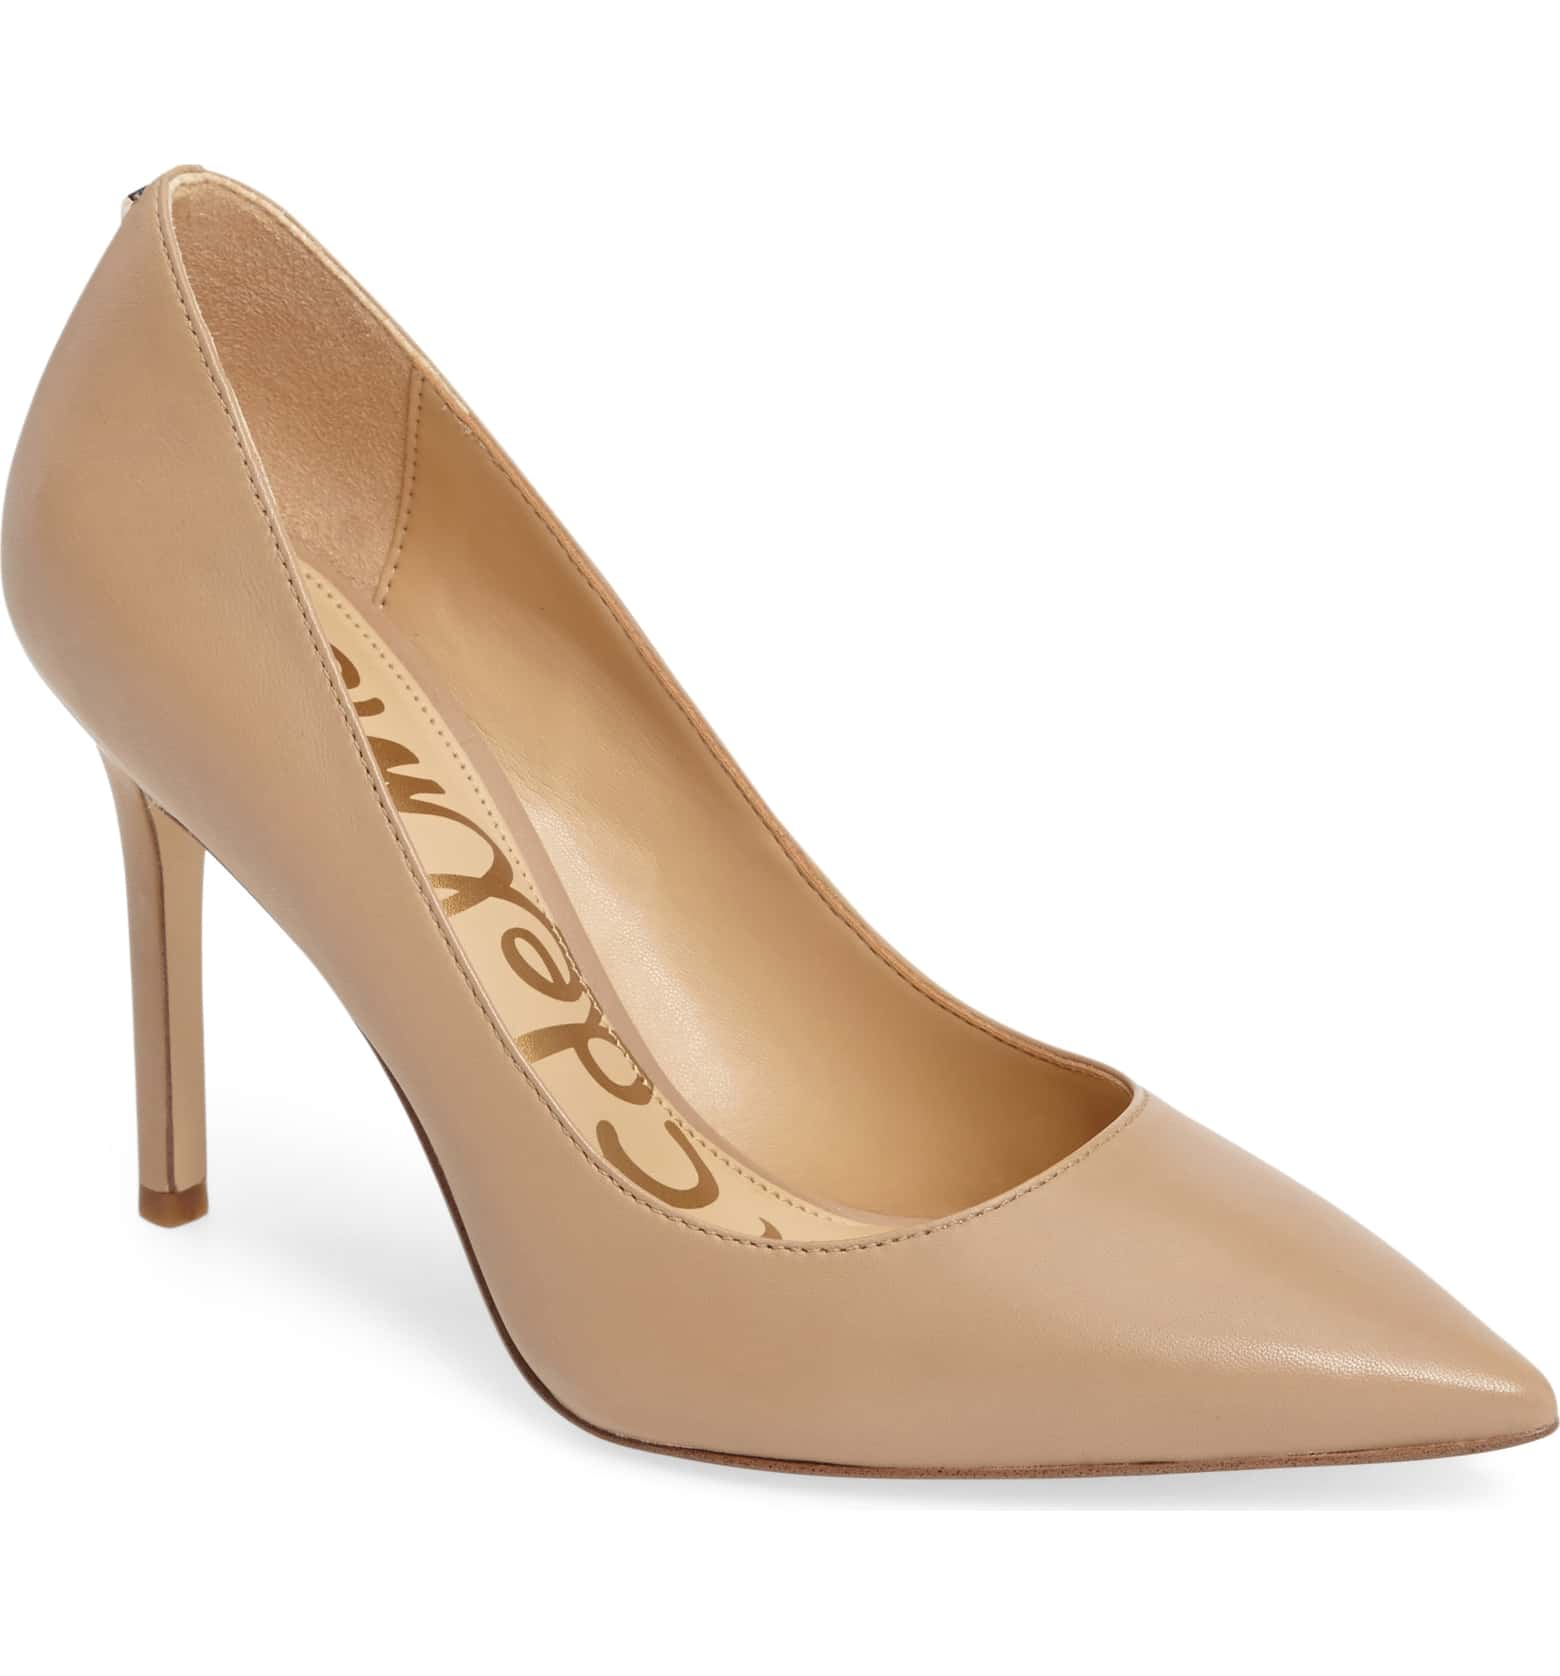 Nude Pumps - I'm not even kidding when I say that these are the most comfortable heels I've ever owned. They come in wide widths and lots of colors. Having a nude pair of heels is very versatile.